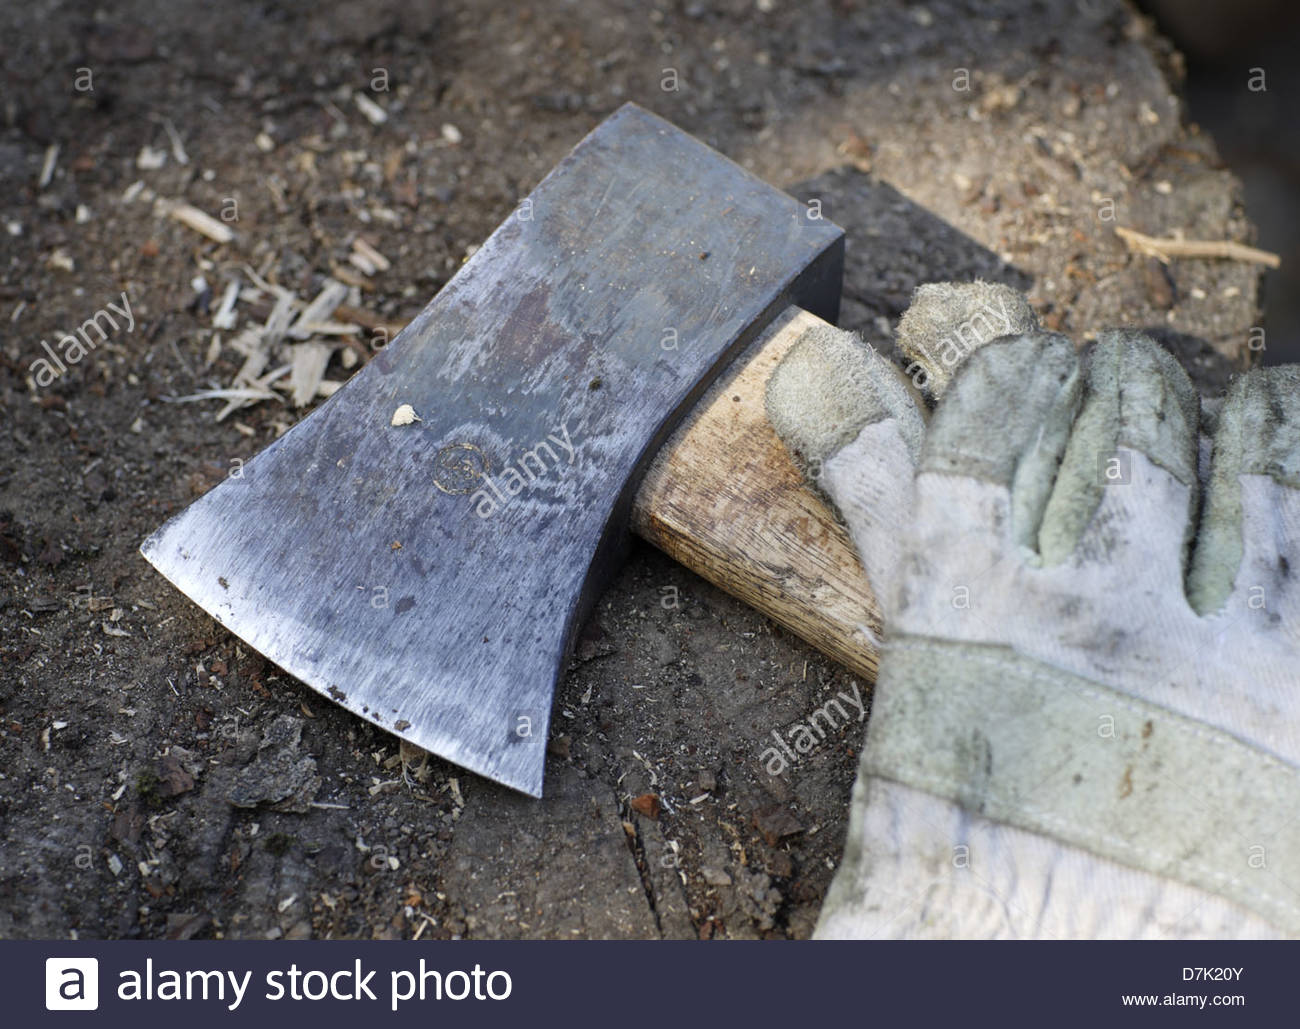 Close-up of an axe with a pair of gloves - Stock Image